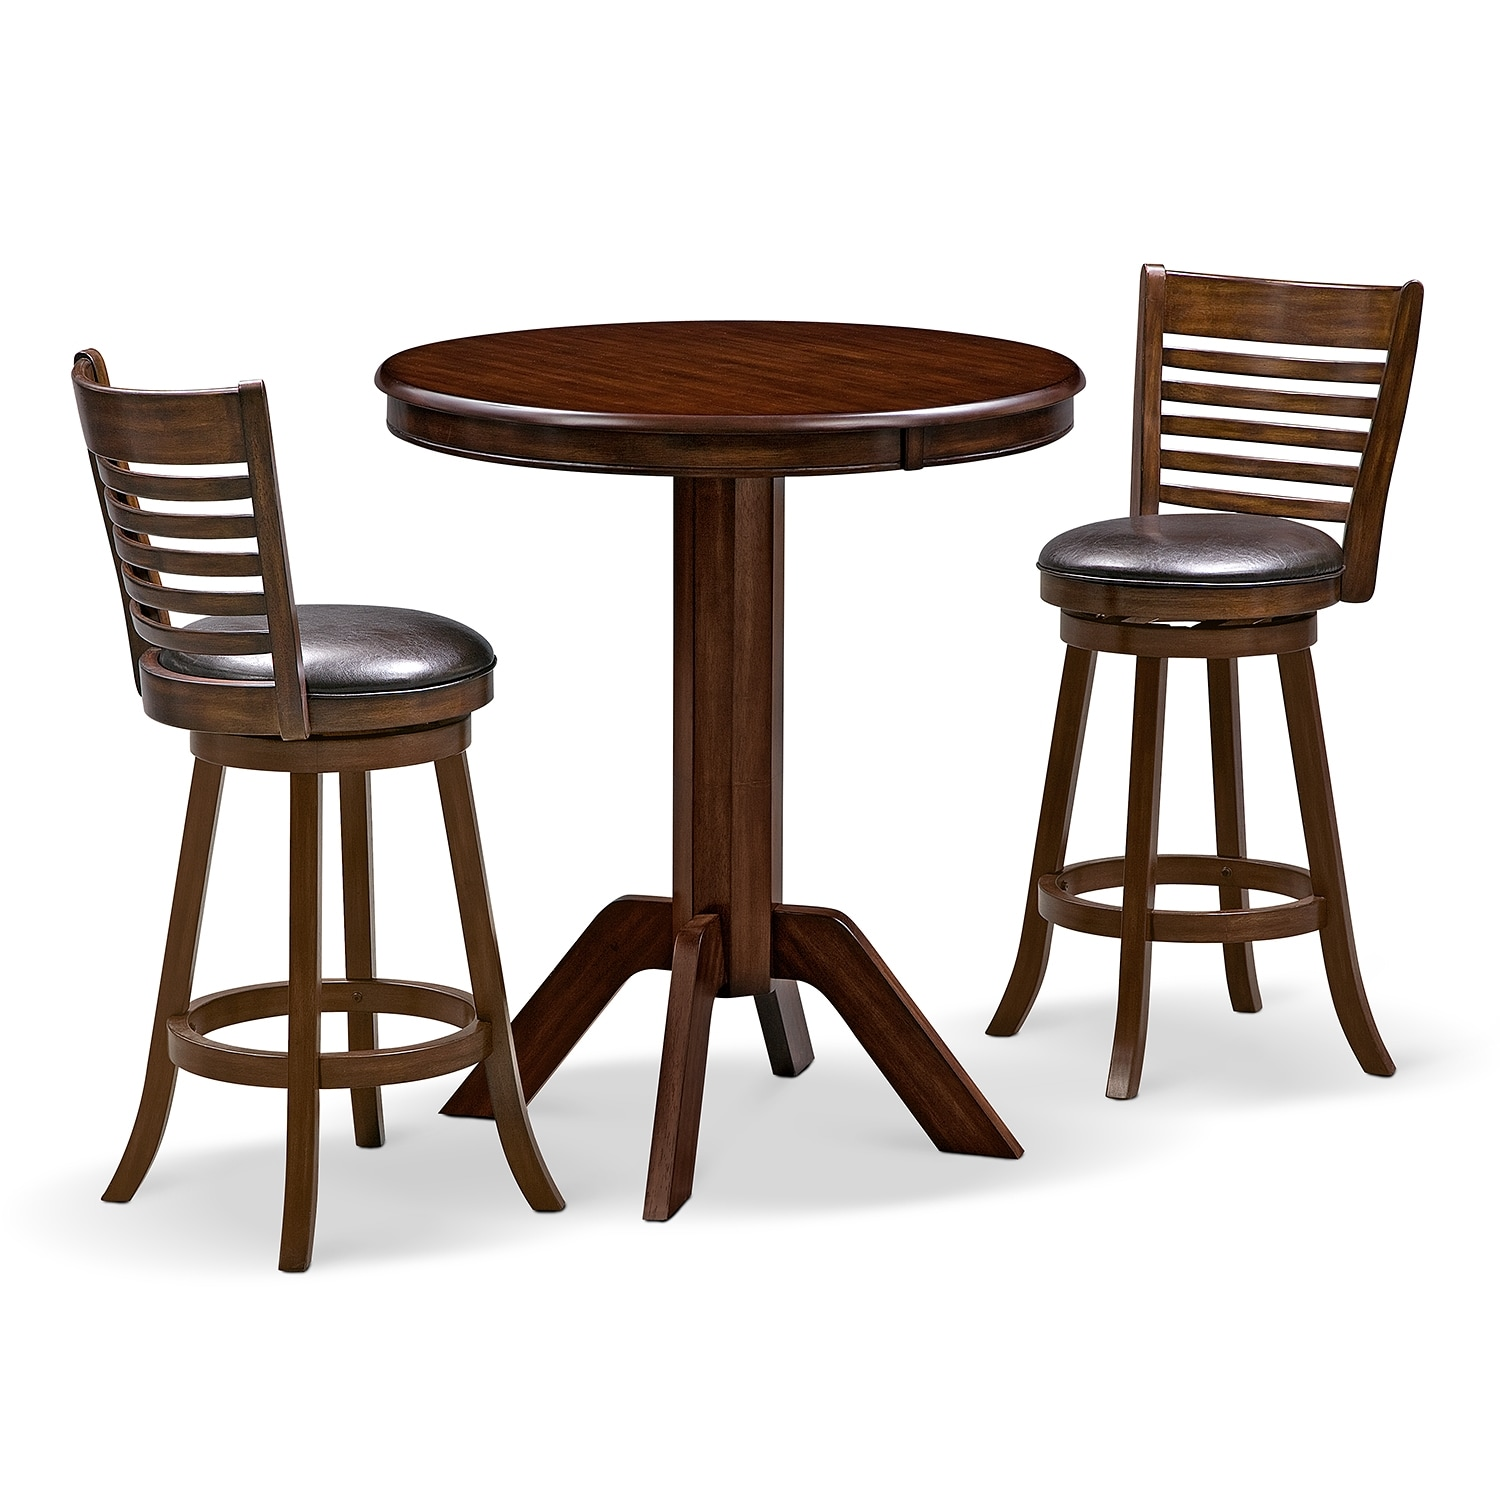 Dining Room Furniture - Concord Chance 3 Pc. Bar-Height Dinette